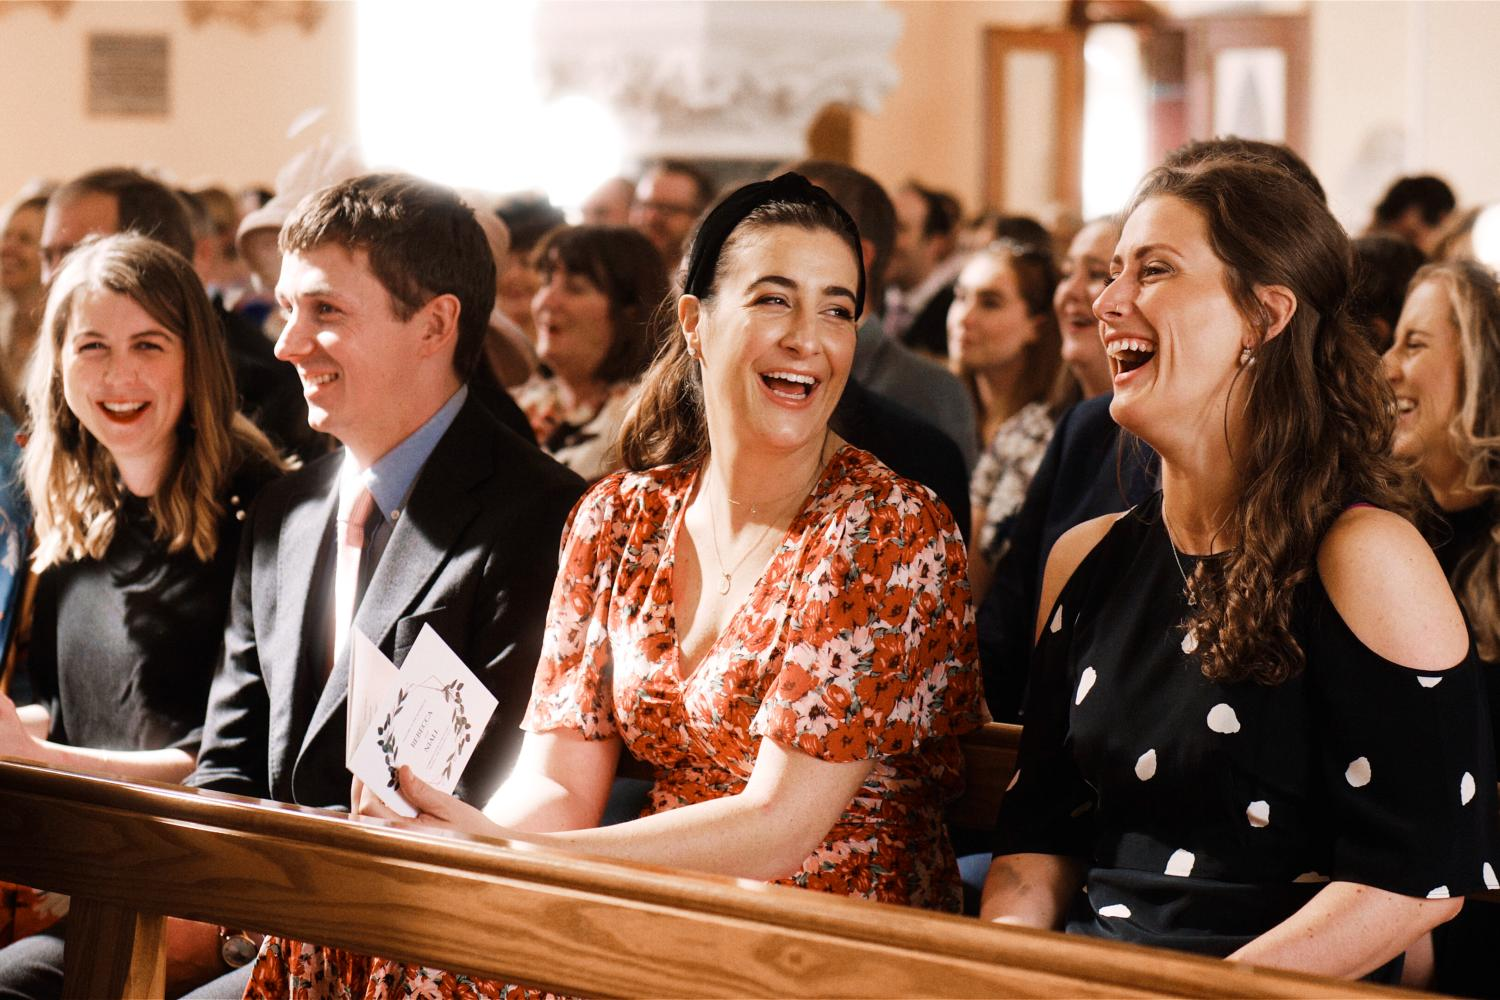 Wedding guests laugh during a wedding ceremony